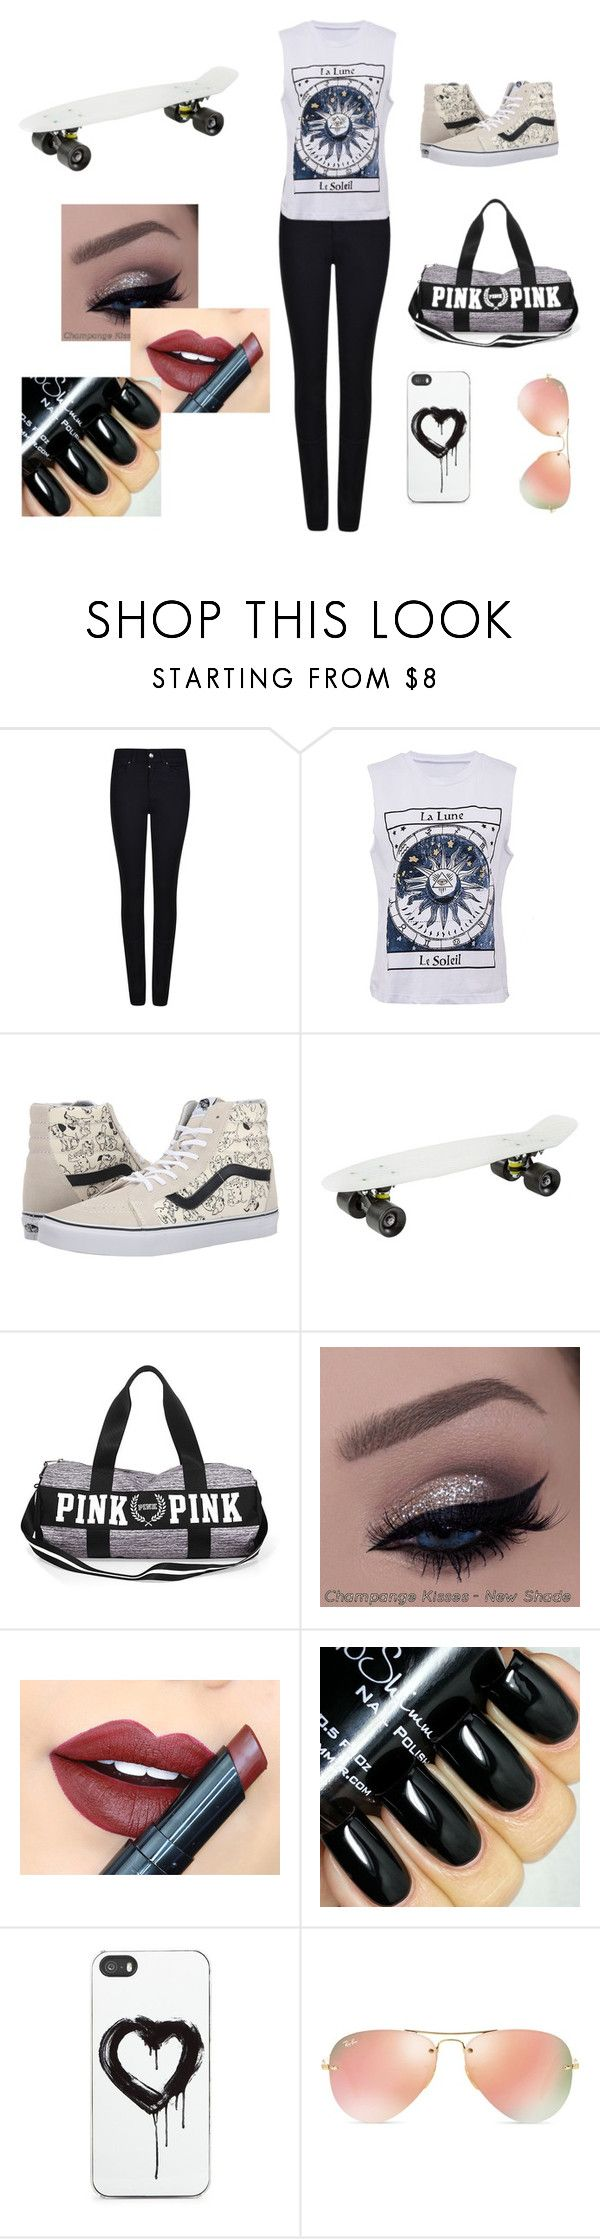 """Skate Girl"" by hazel2002 ❤ liked on Polyvore featuring Armani Jeans, Vans, Fiebiger, Zero Gravity, Ray-Ban, women's clothing, women, female, woman and misses"